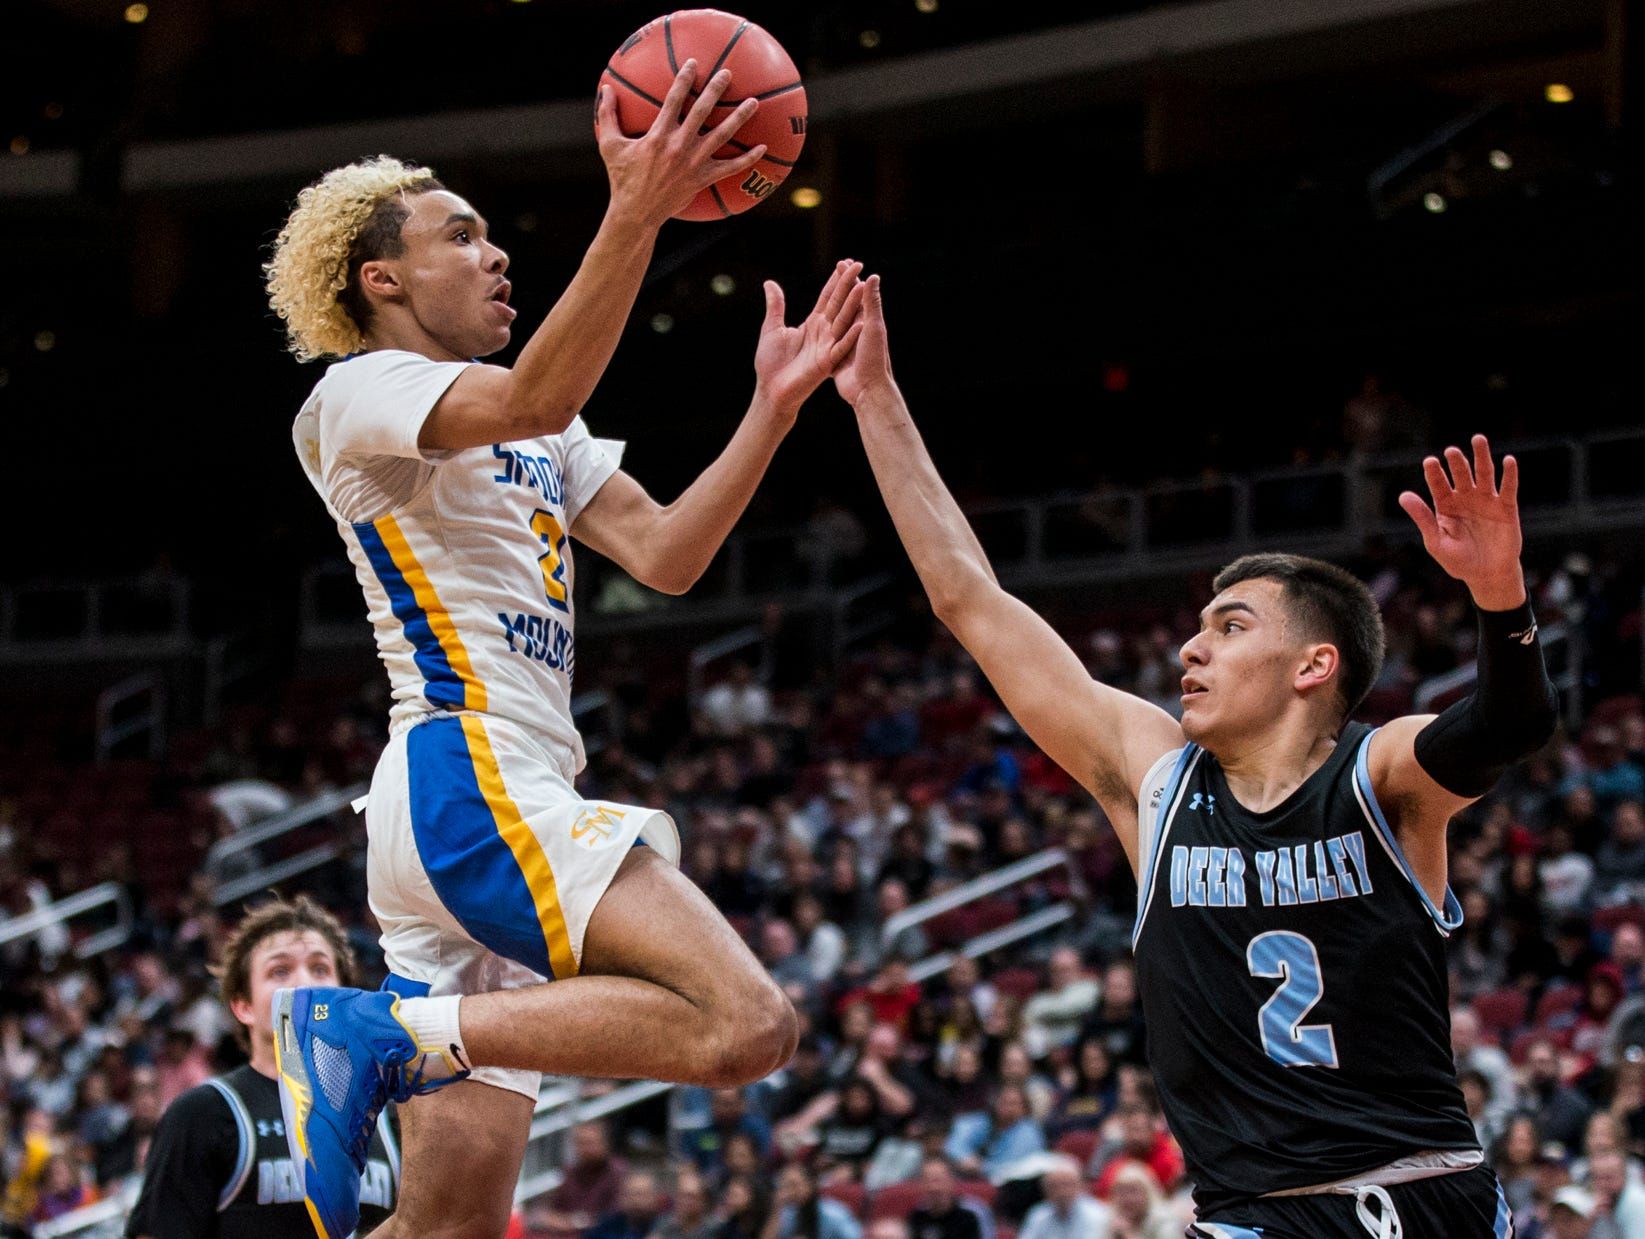 Shadow Mountain's Jaelen House attempts a layup against Deer Valley during the 4A boys basketball championship on Saturday, Feb. 23, 2019, at Gila River Arena in Glendale, Ariz.